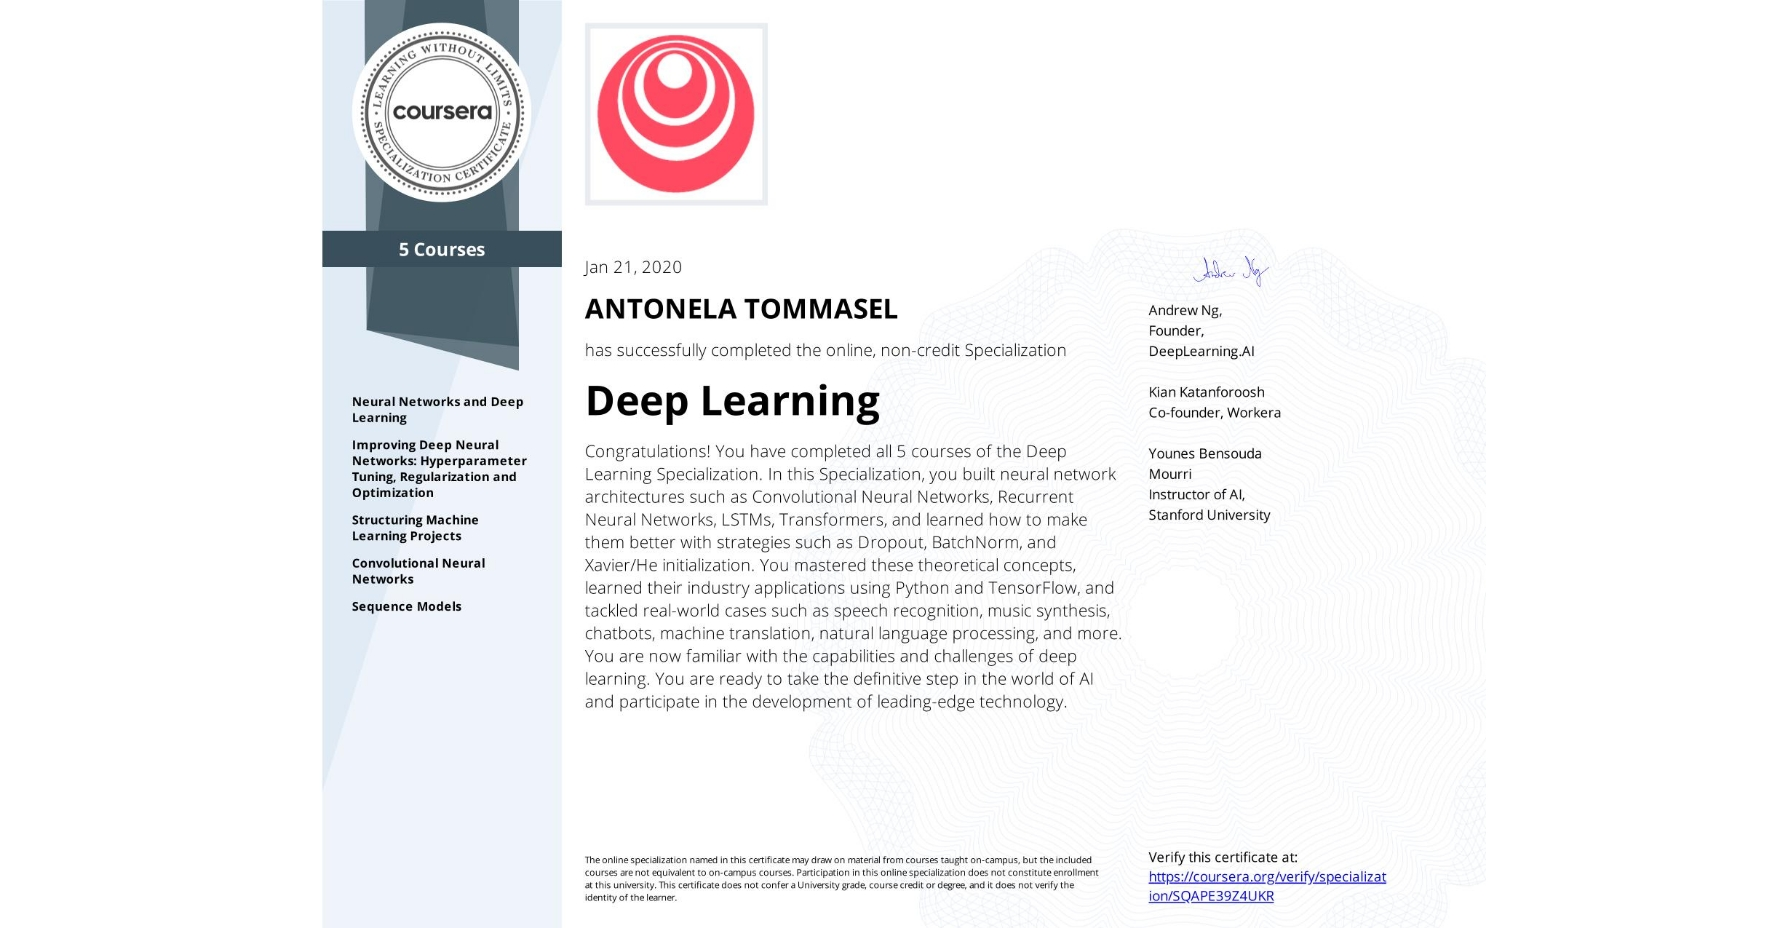 View certificate for Antonela Tommasel, Deep Learning, offered through Coursera. Congratulations! You have completed all five courses of the Deep Learning Specialization.  In this Specialization, you built neural network architectures such as Convolutional Neural Networks, Recurrent Neural Networks, LSTMs, Transformers and learned how to make them better with strategies such as Dropout, BatchNorm, Xavier/He initialization, and more. You mastered these theoretical concepts and their application using Python and TensorFlow and also tackled real-world case studies such as autonomous driving, sign language reading, music generation, computer vision, speech recognition, and natural language processing.   You're now familiar with the capabilities, challenges, and consequences of deep learning and are ready to participate in the development of leading-edge AI technology.